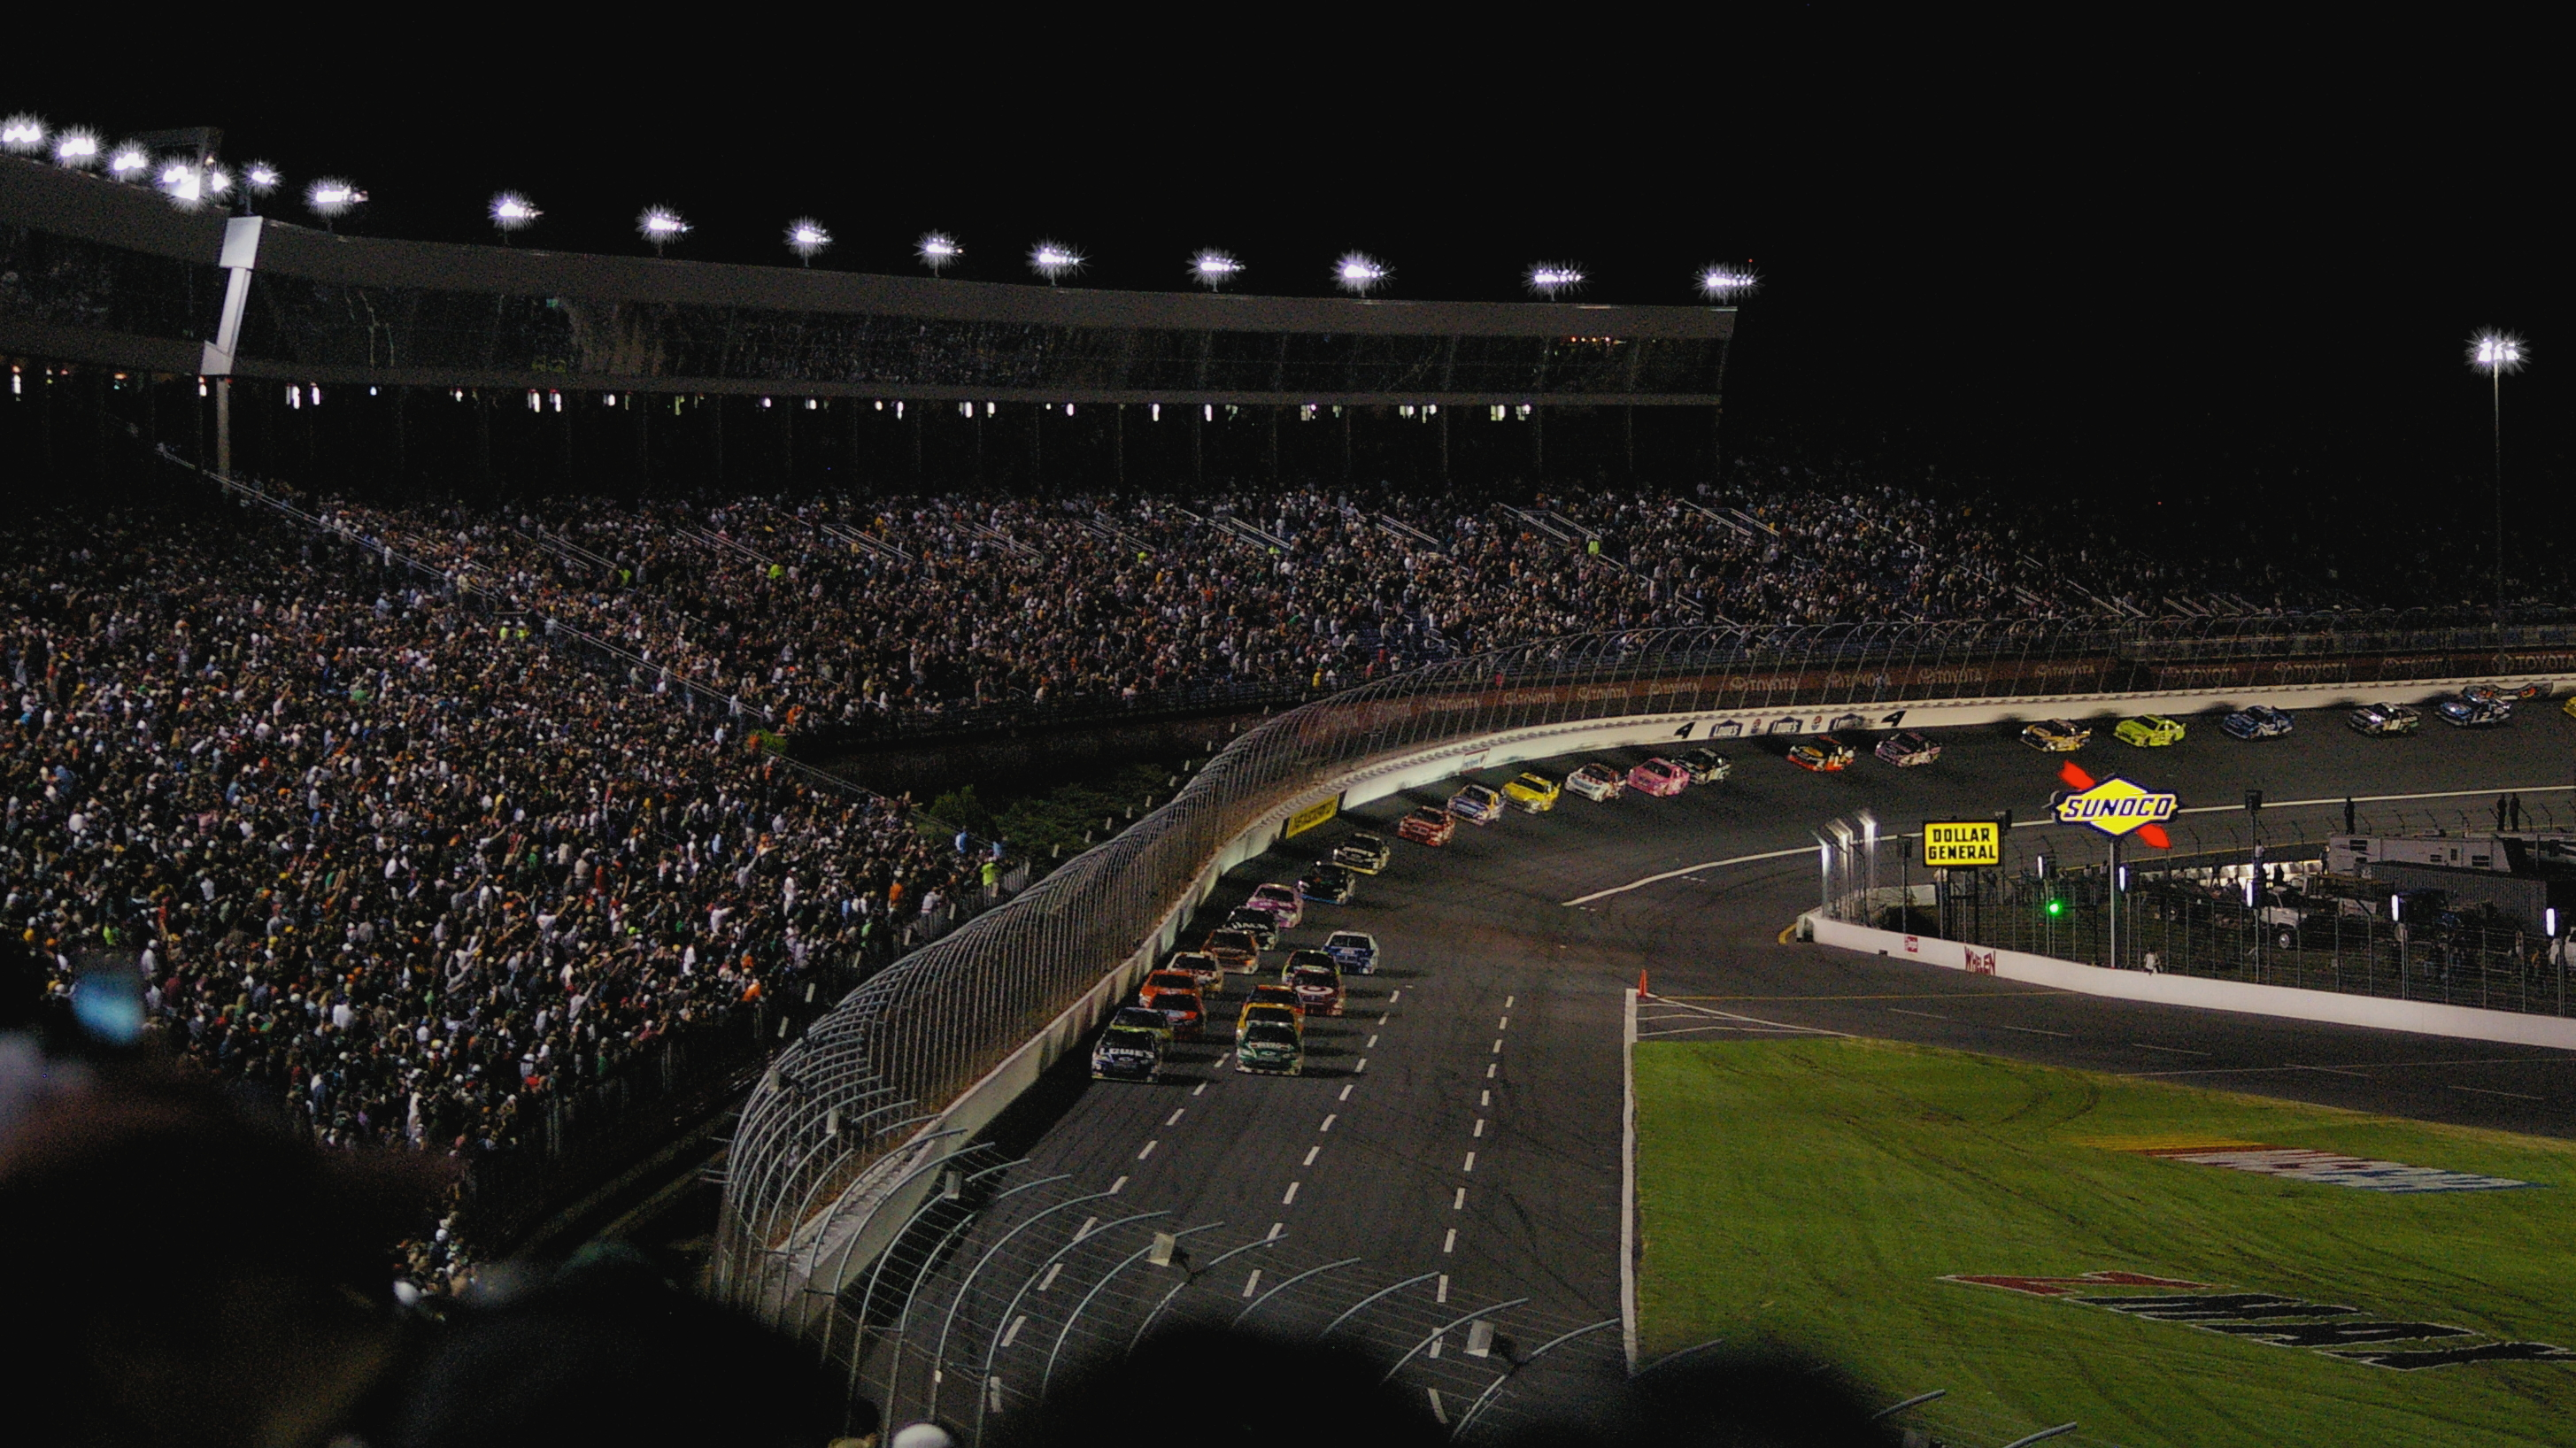 Opinions on charlotte motor speedway for Charlotte motor speedway pictures